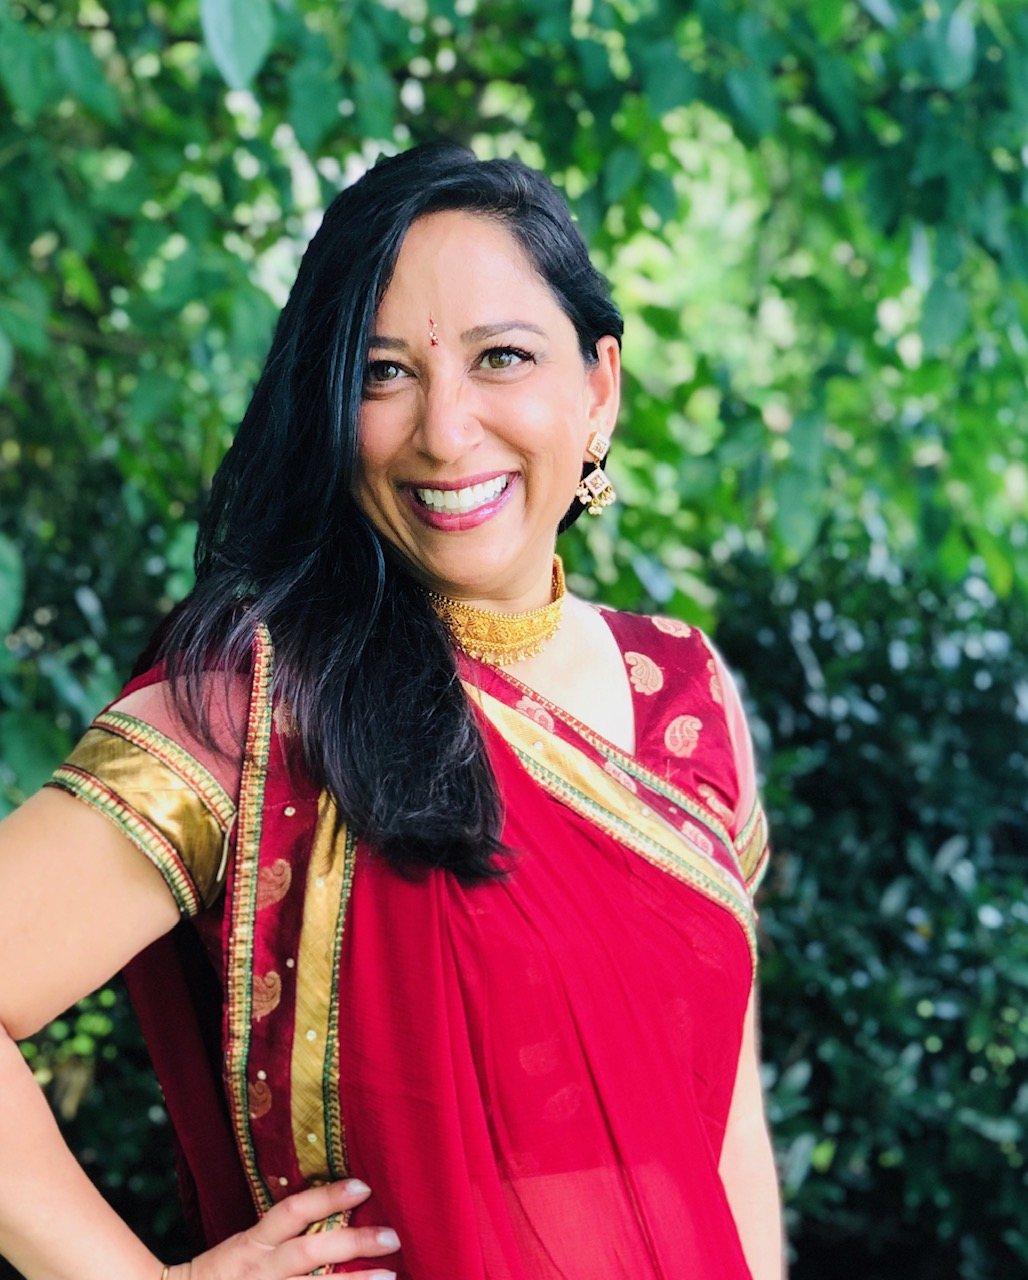 Meet Anjli - South Asian Wedding ExpertI'm excited to help you in planning one of the most memorable days of your life! My goal is to make the process of selecting the perfect resort for your wedding stress-free and to manage the travel arrangements for you and guests from beginning to end.Cheers to all things travel!-Anjli Patel